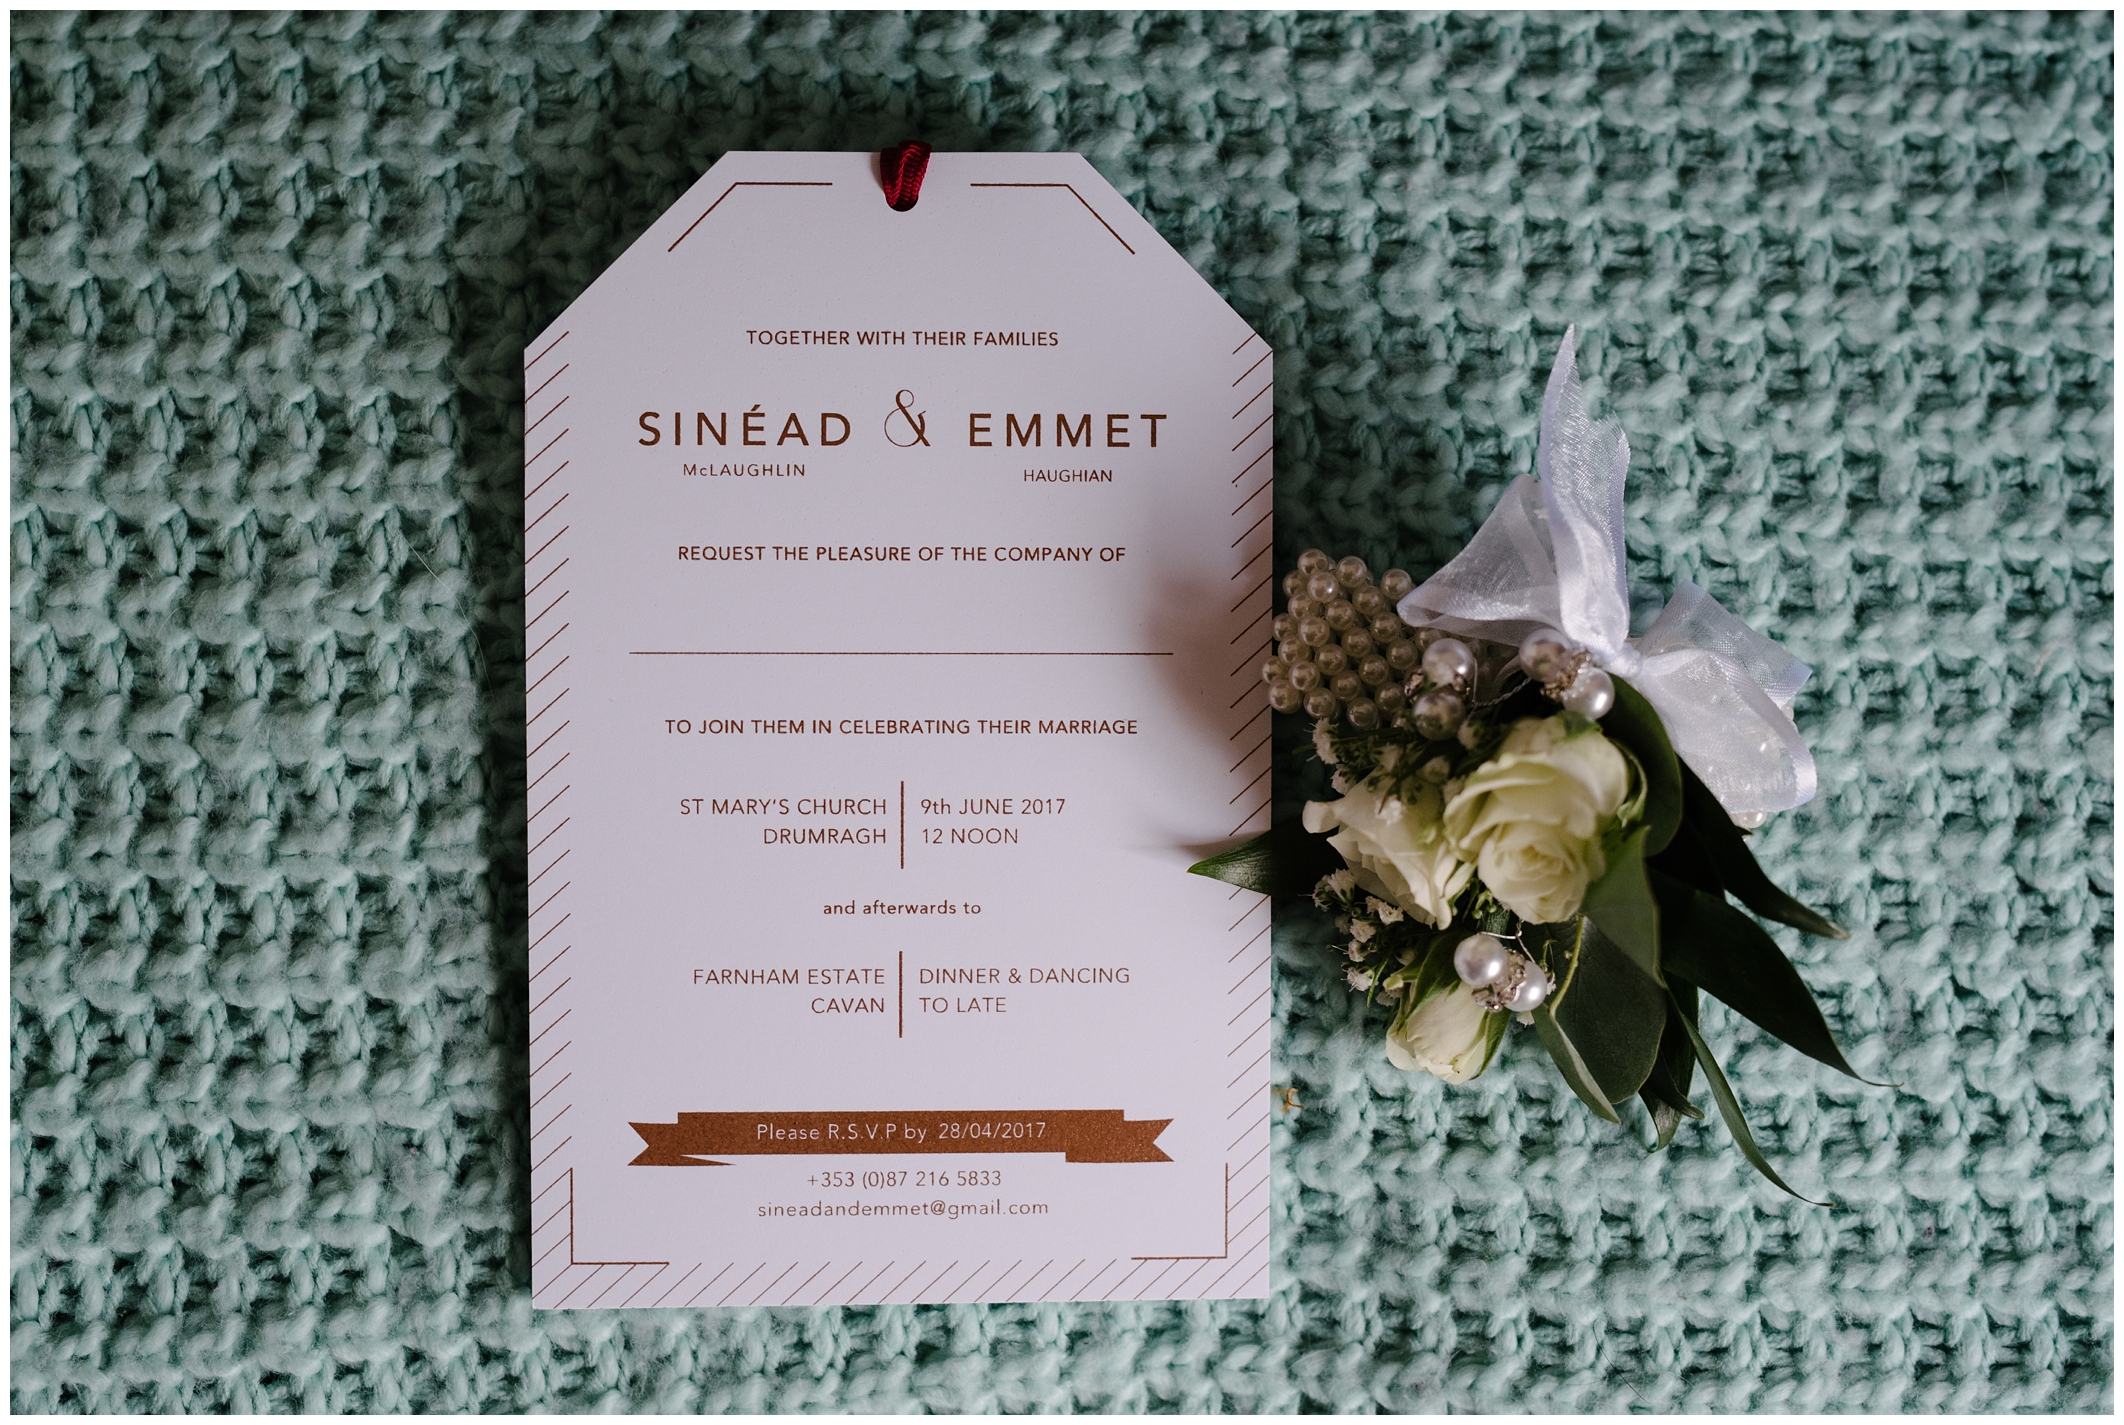 sinead_emmet_farnham_estate_wedding_jude_browne_photography_0015.jpg